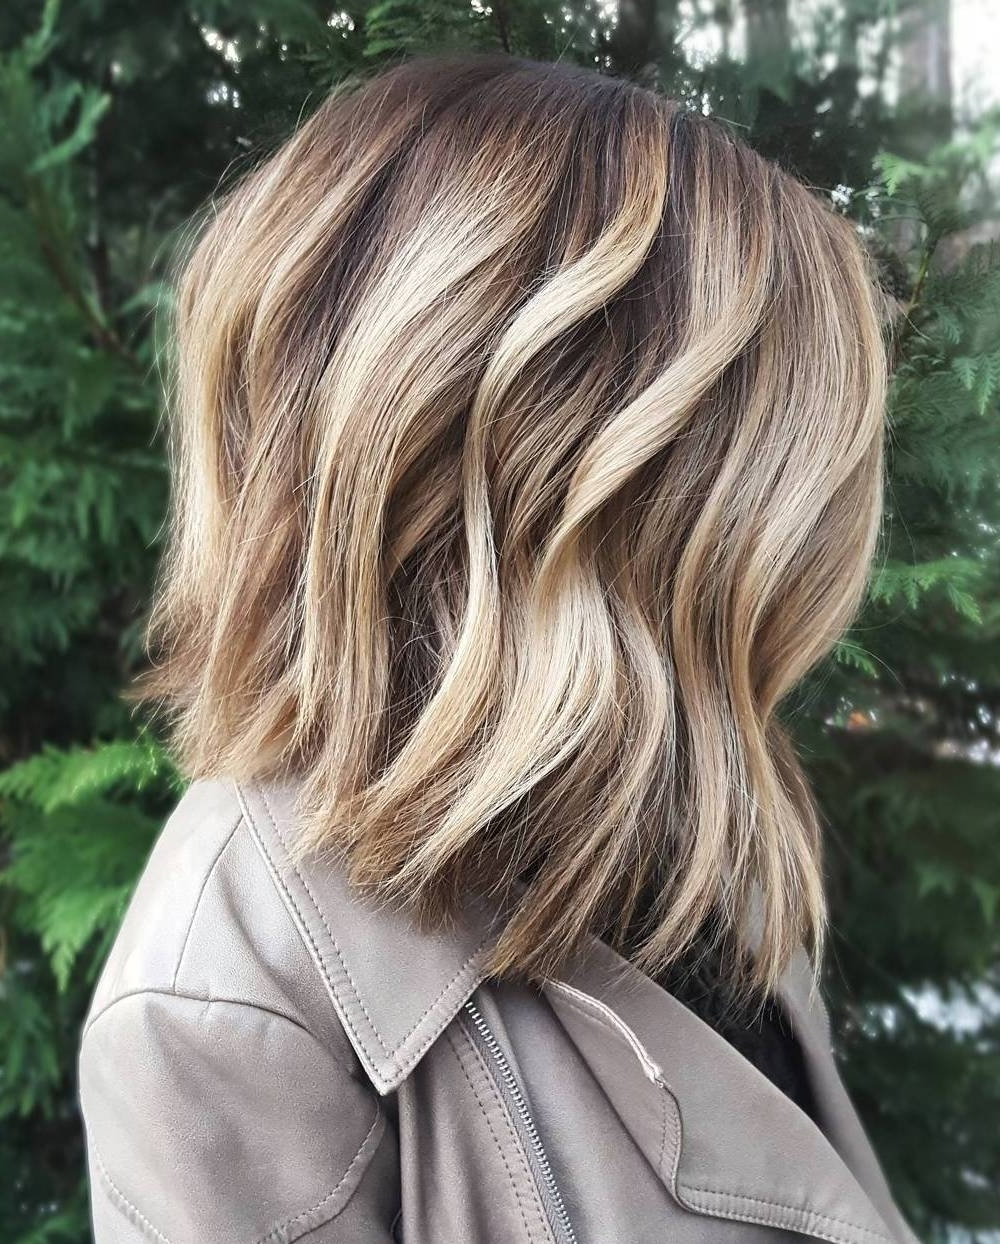 Recent Dirty Blonde Hairstyles Within 20 Dirty Blonde Hair Ideas That Work On Everyone (View 18 of 20)